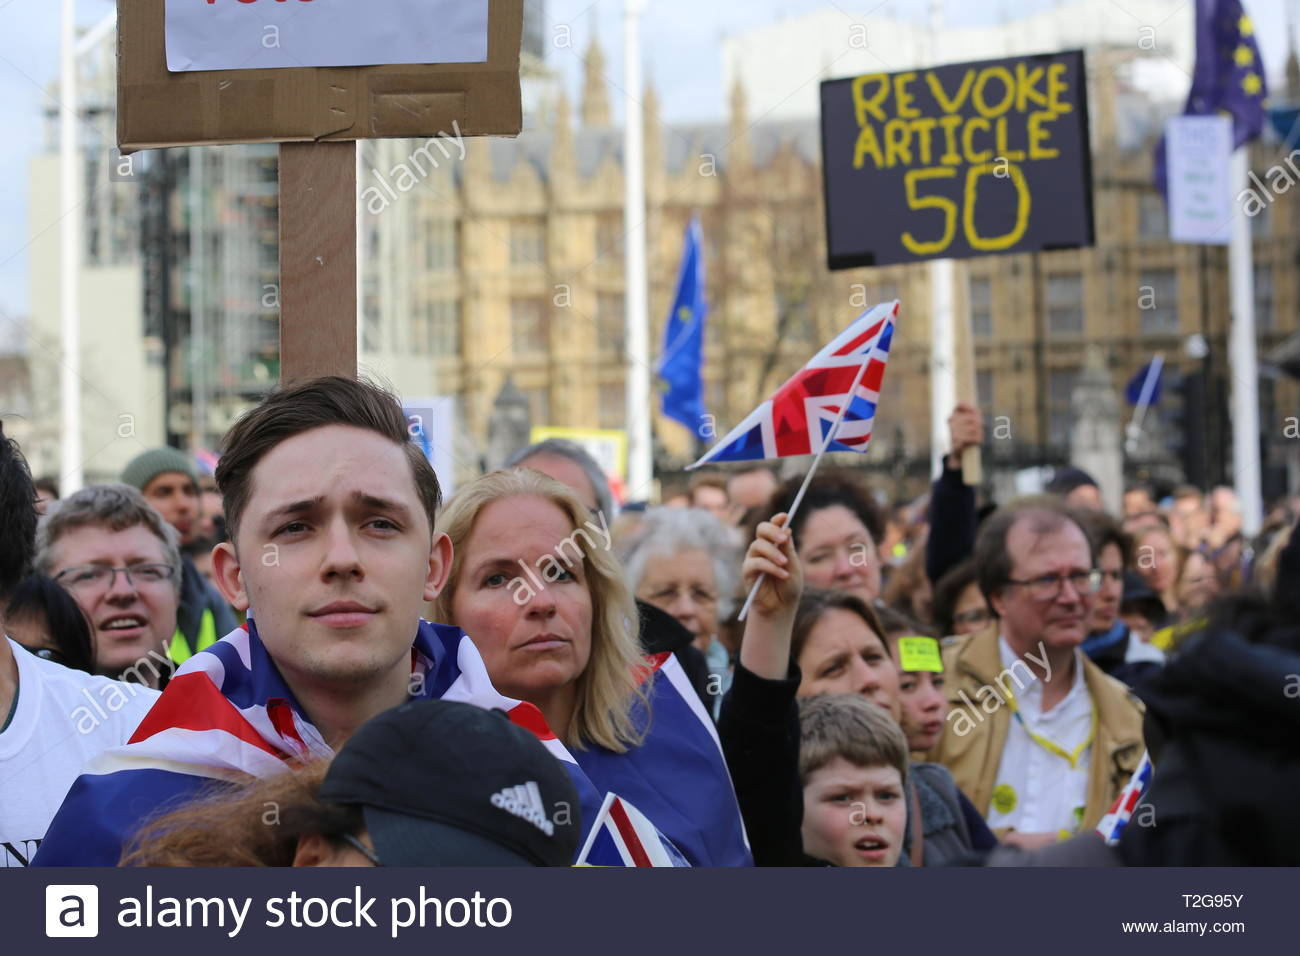 The people's vote protest has ended at Westminster Westminster.Many well known speakers including Tom Watson and Nicola Sturgeon addressed the crowd t - Stock Image